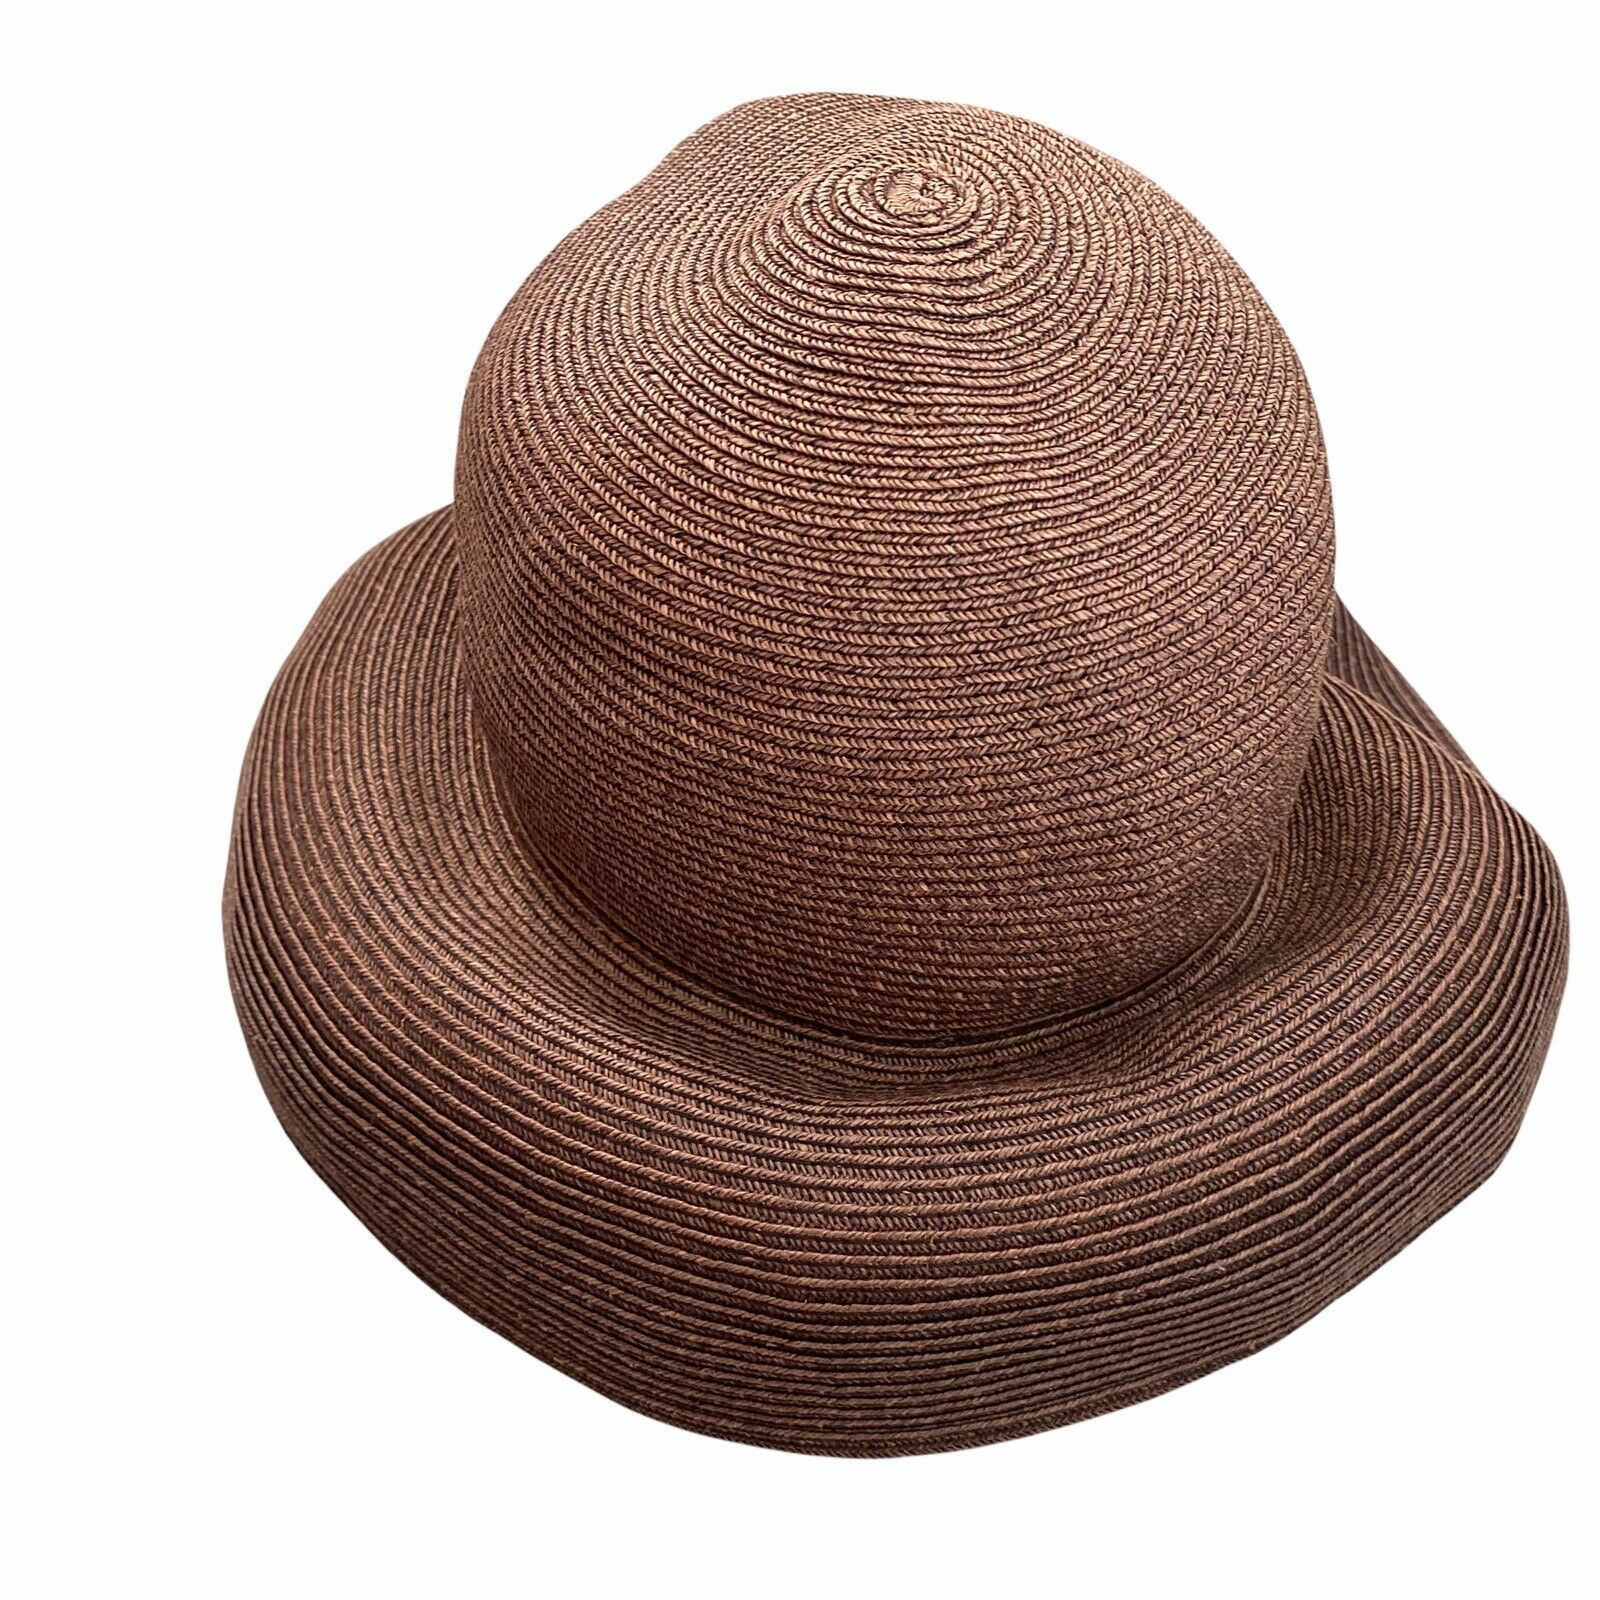 Eric Javits Squishee Packable Straw Hat Wide Brim… - image 3